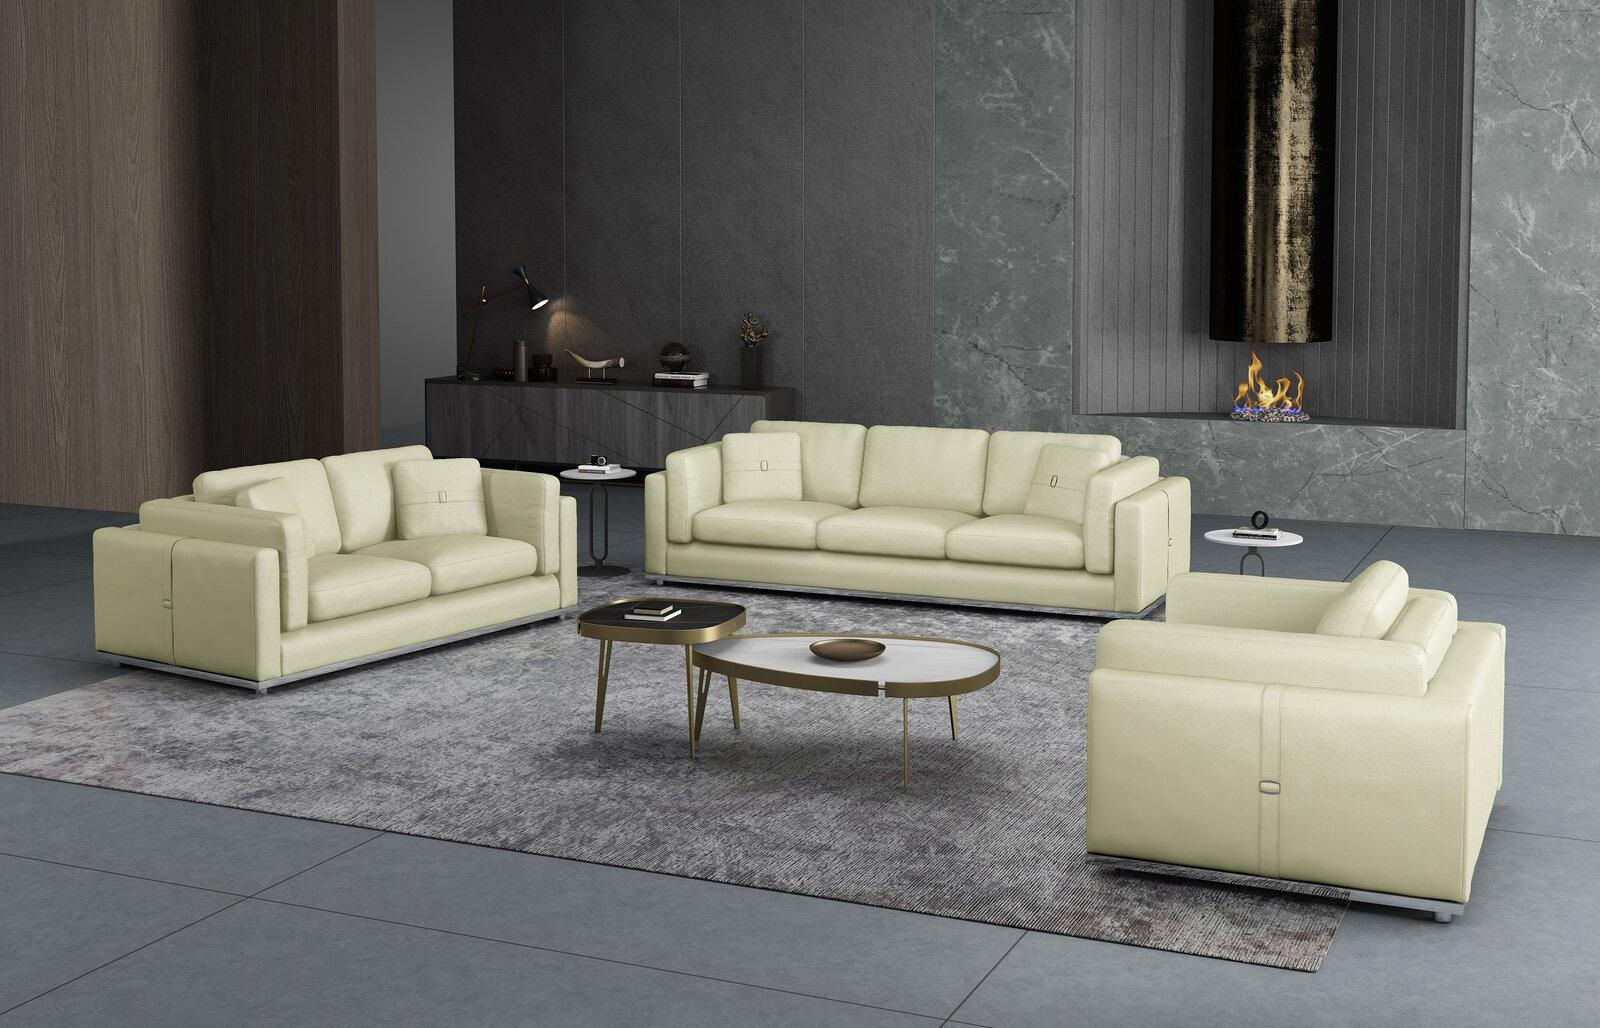 Contemporary, Modern Off-White Leather and Wood, Genuine leather, Solid Hardwood Sofa Set 3 pcs PICASSO by European Furniture